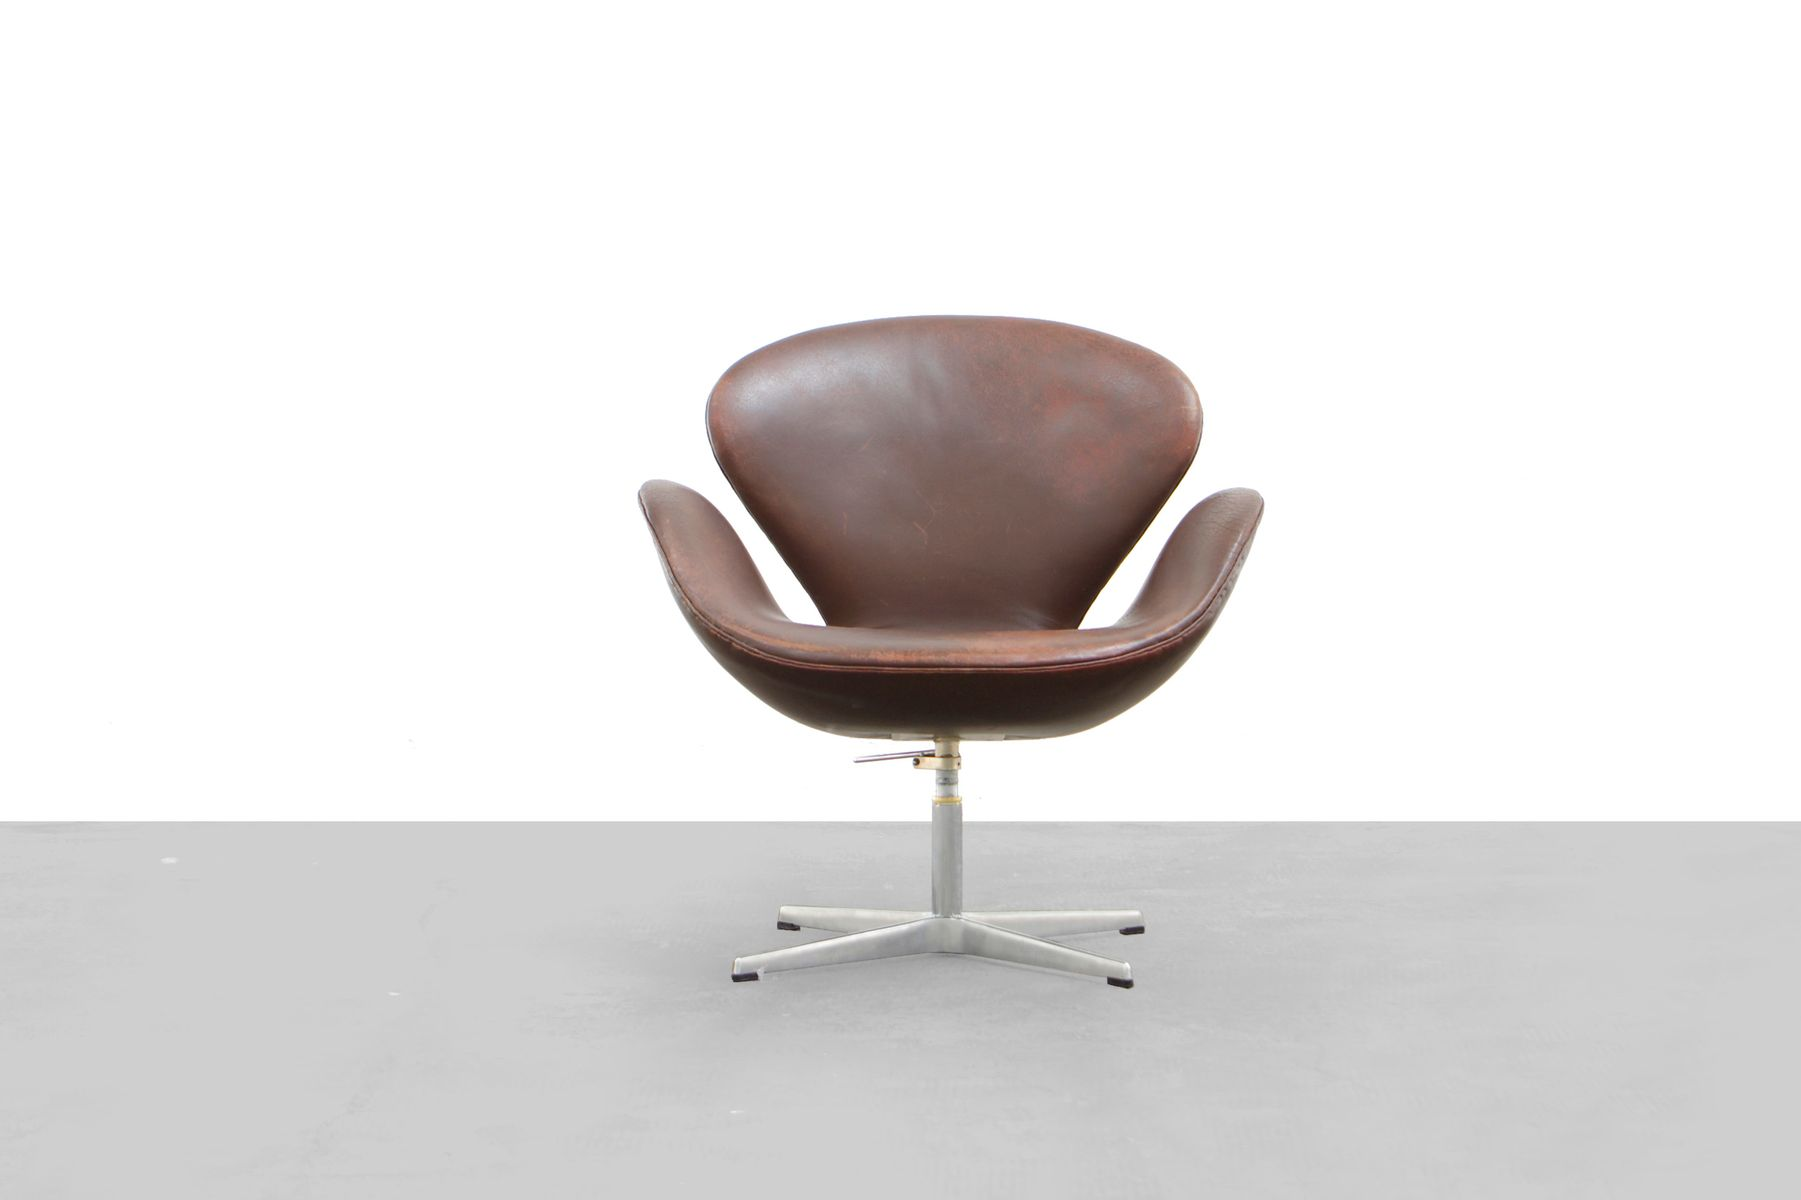 3320 swan chair by arne jacobsen for fritz hansen 1957 for sale at pamono - Fauteuil swan arne jacobsen ...